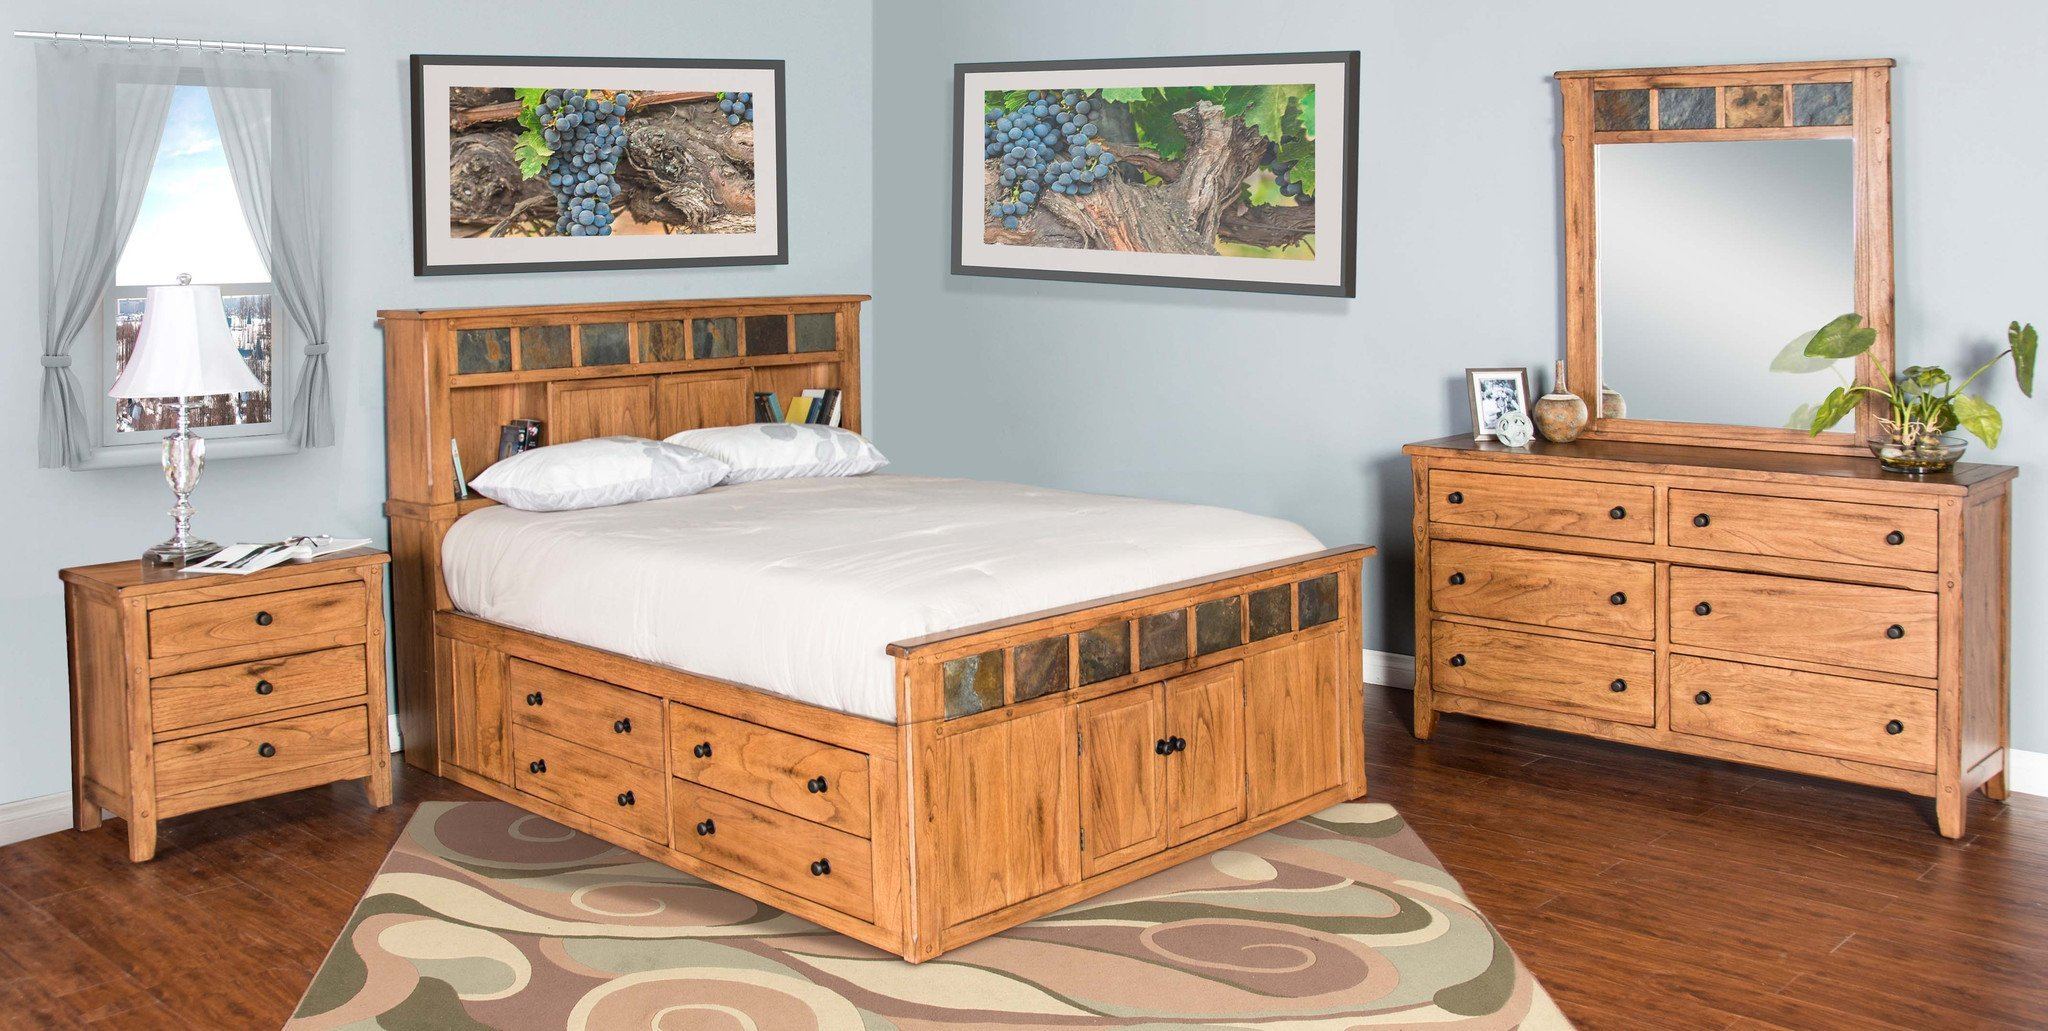 Distressed Wood Bedroom Furniture Inspirational Sedona Rustic Petite Storage Bedroom Suite Queen Size